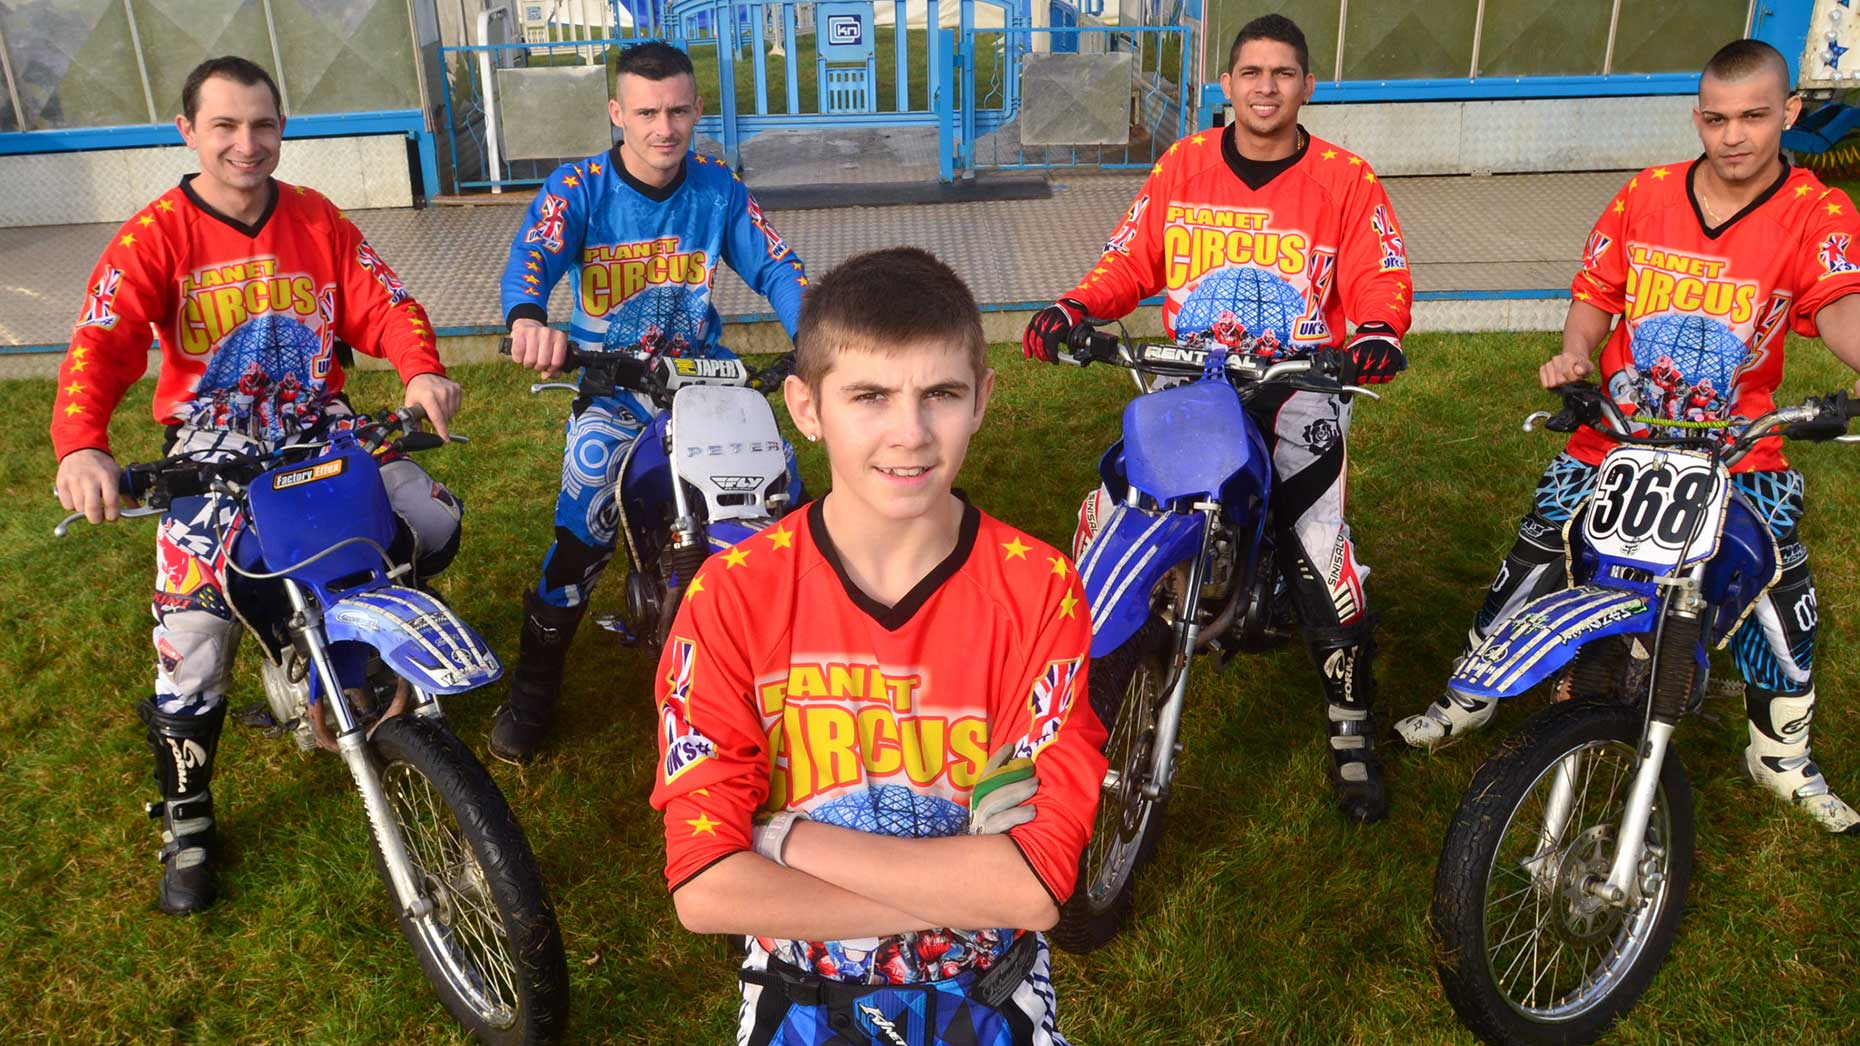 Peter Pavlov and his trusted team of bikers at Planet Circus. Photo: Steve Smailes for The Lincolnite